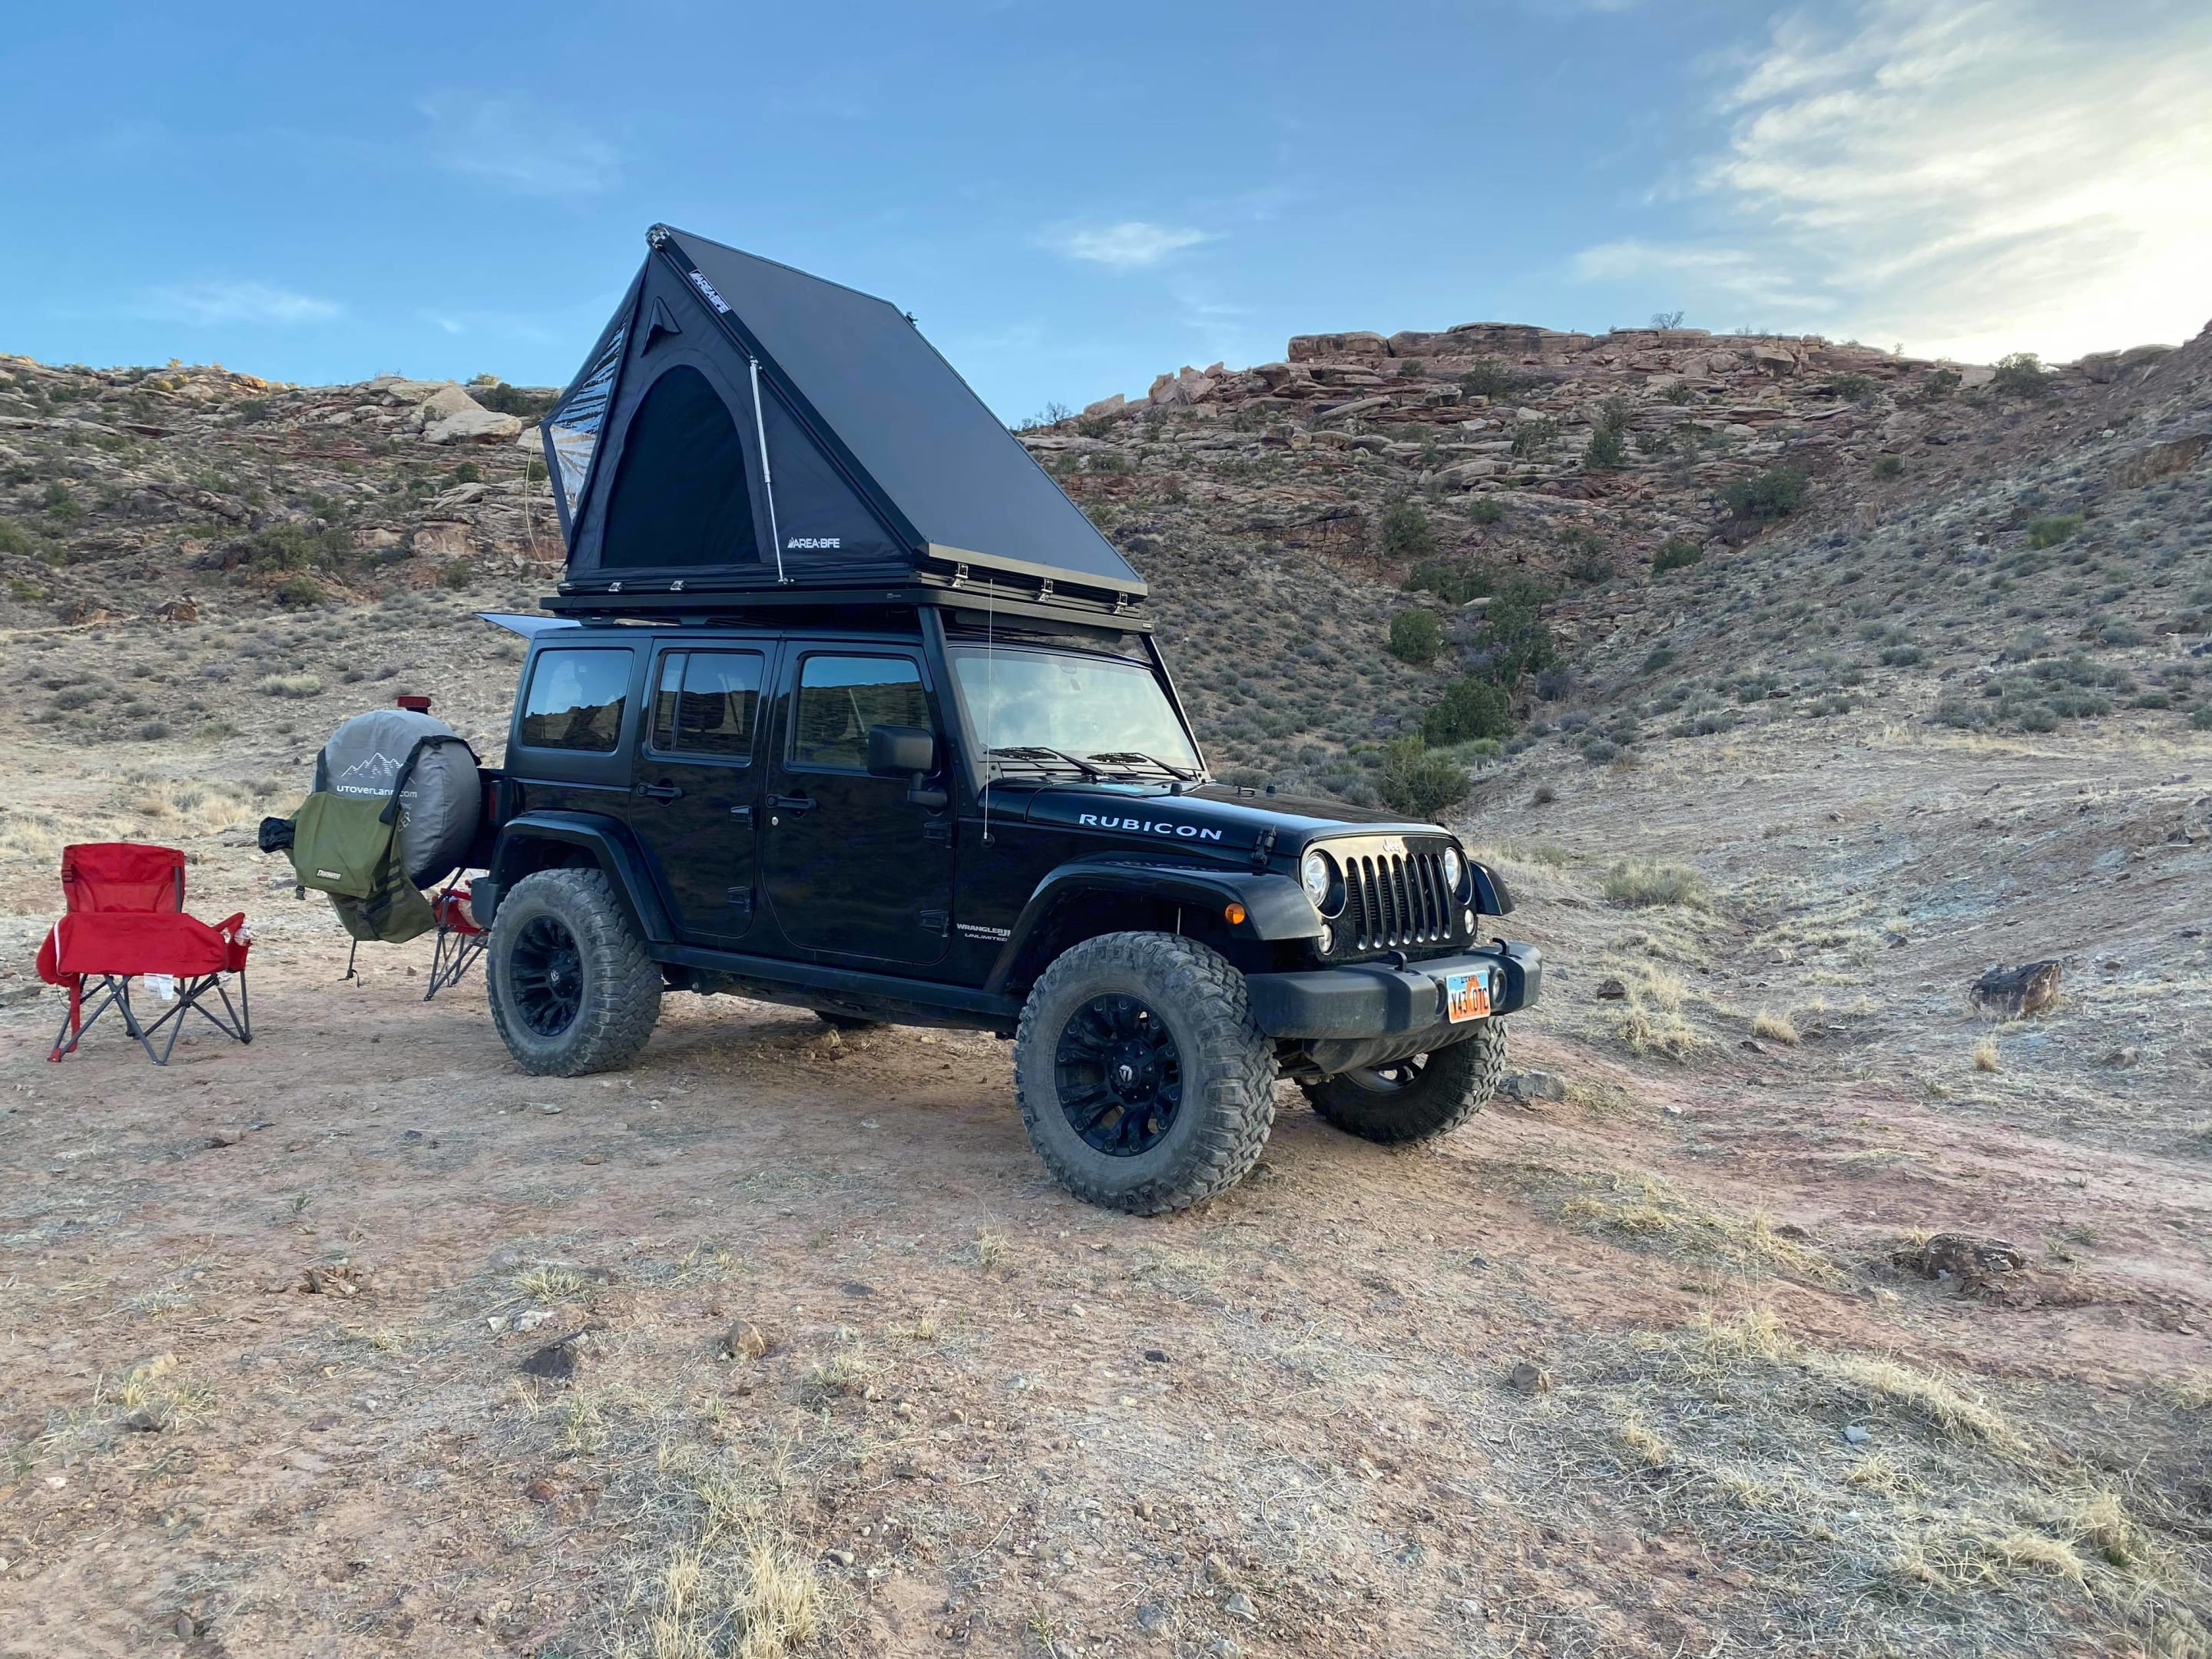 This is the current model of tent. Jeep Rubicon Wrangler Unlimited 4 door 2018